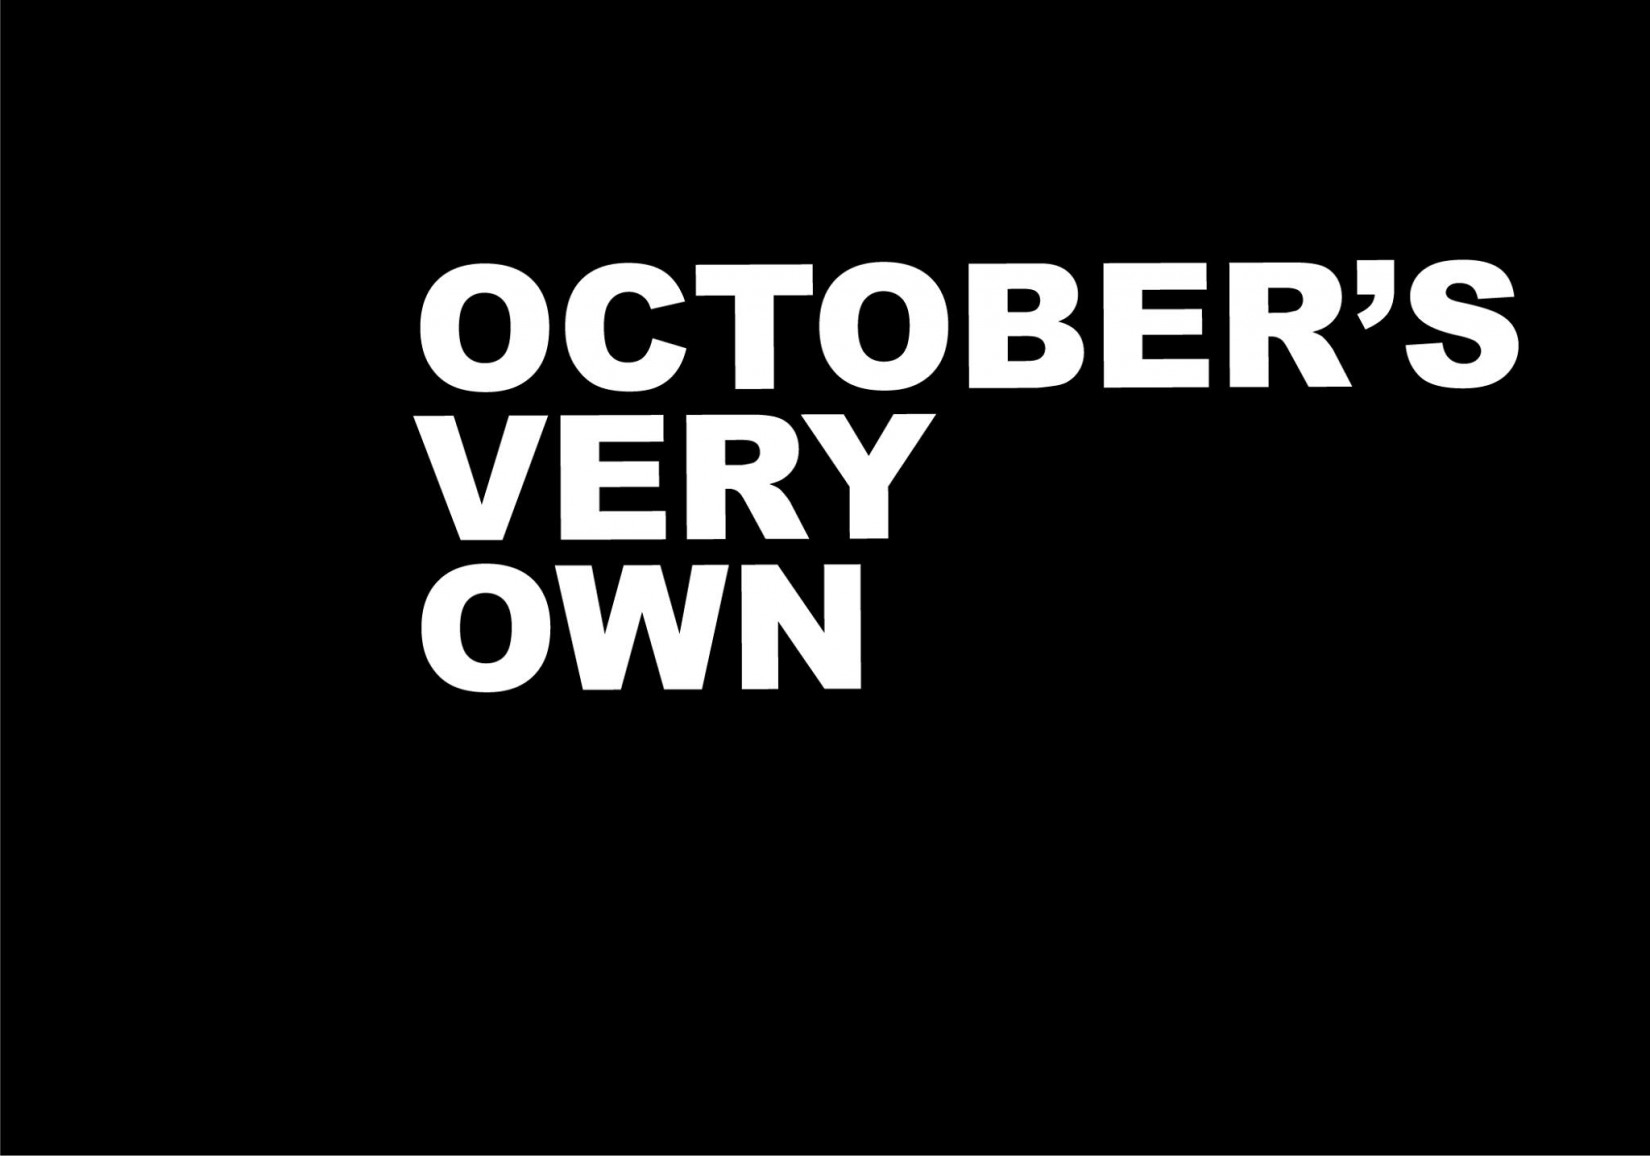 October's Very Own - Forum | Dafont